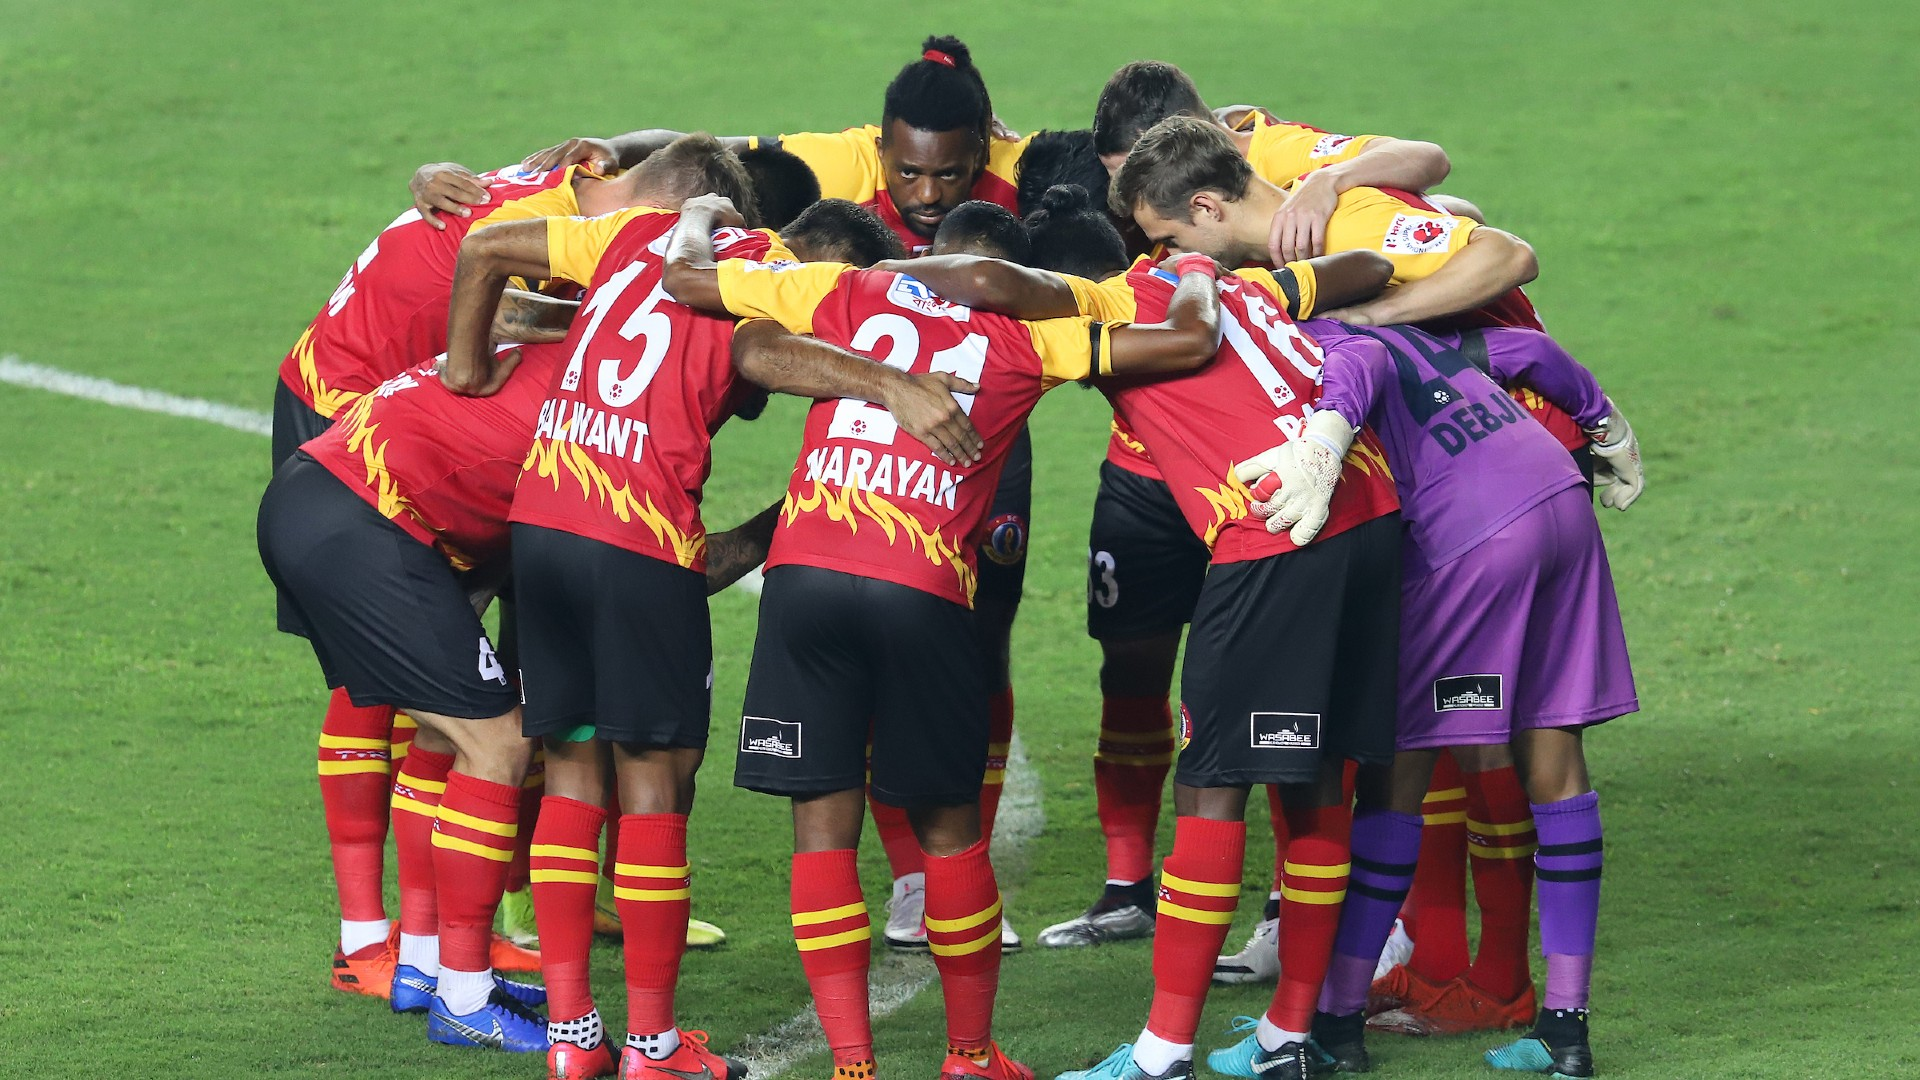 ISL 2020-21: Derby frenzy over, real test ahead for East Bengal now